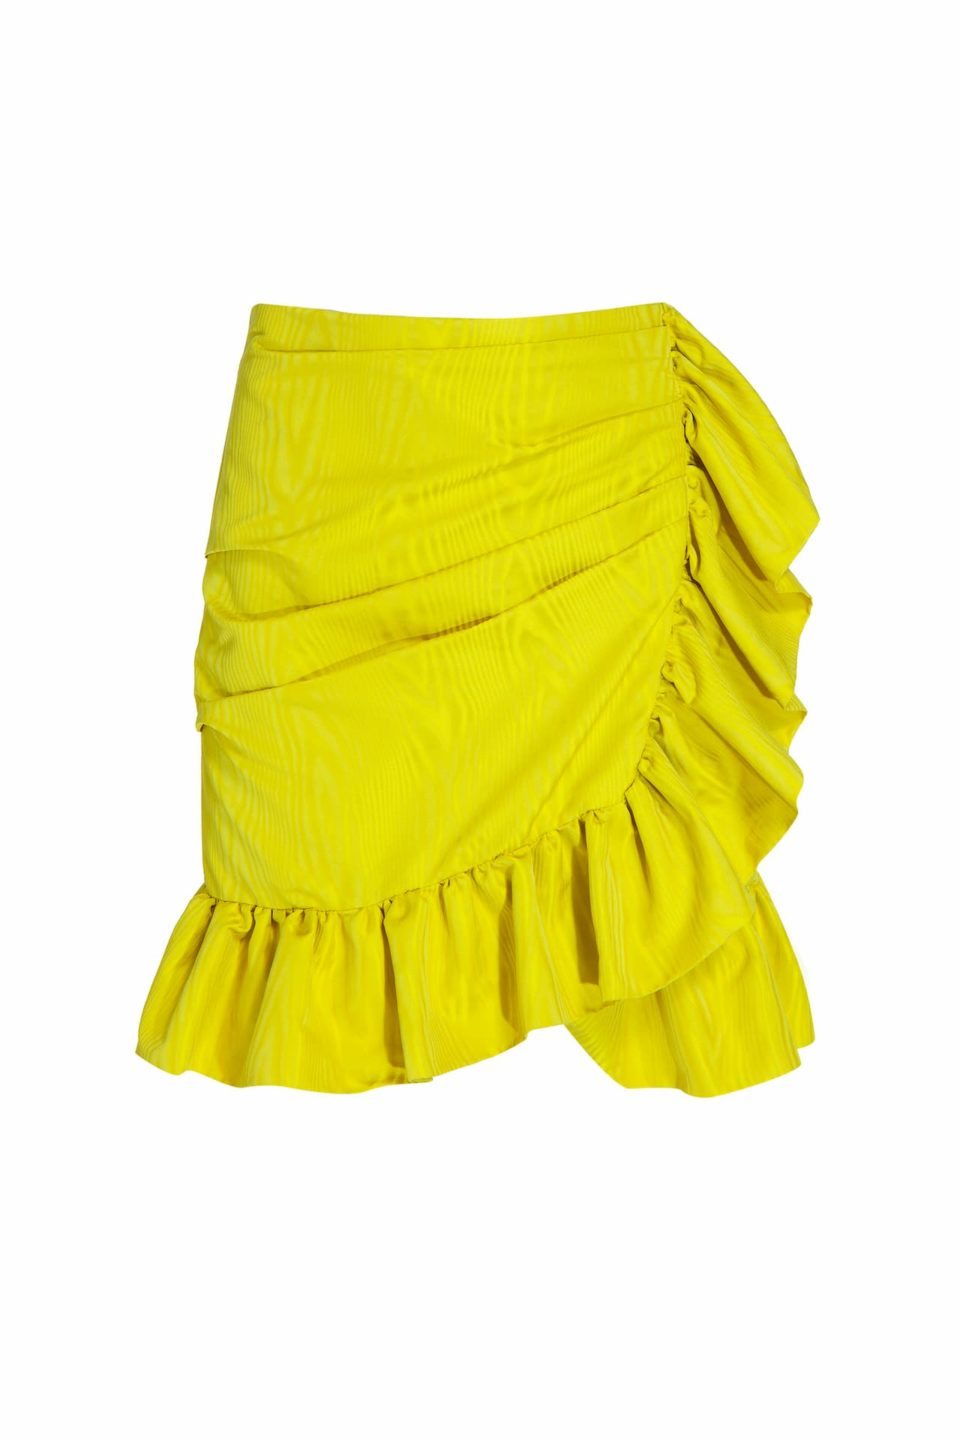 Luella PR2066 Yellow ruffled wrap taffeta mini skirt